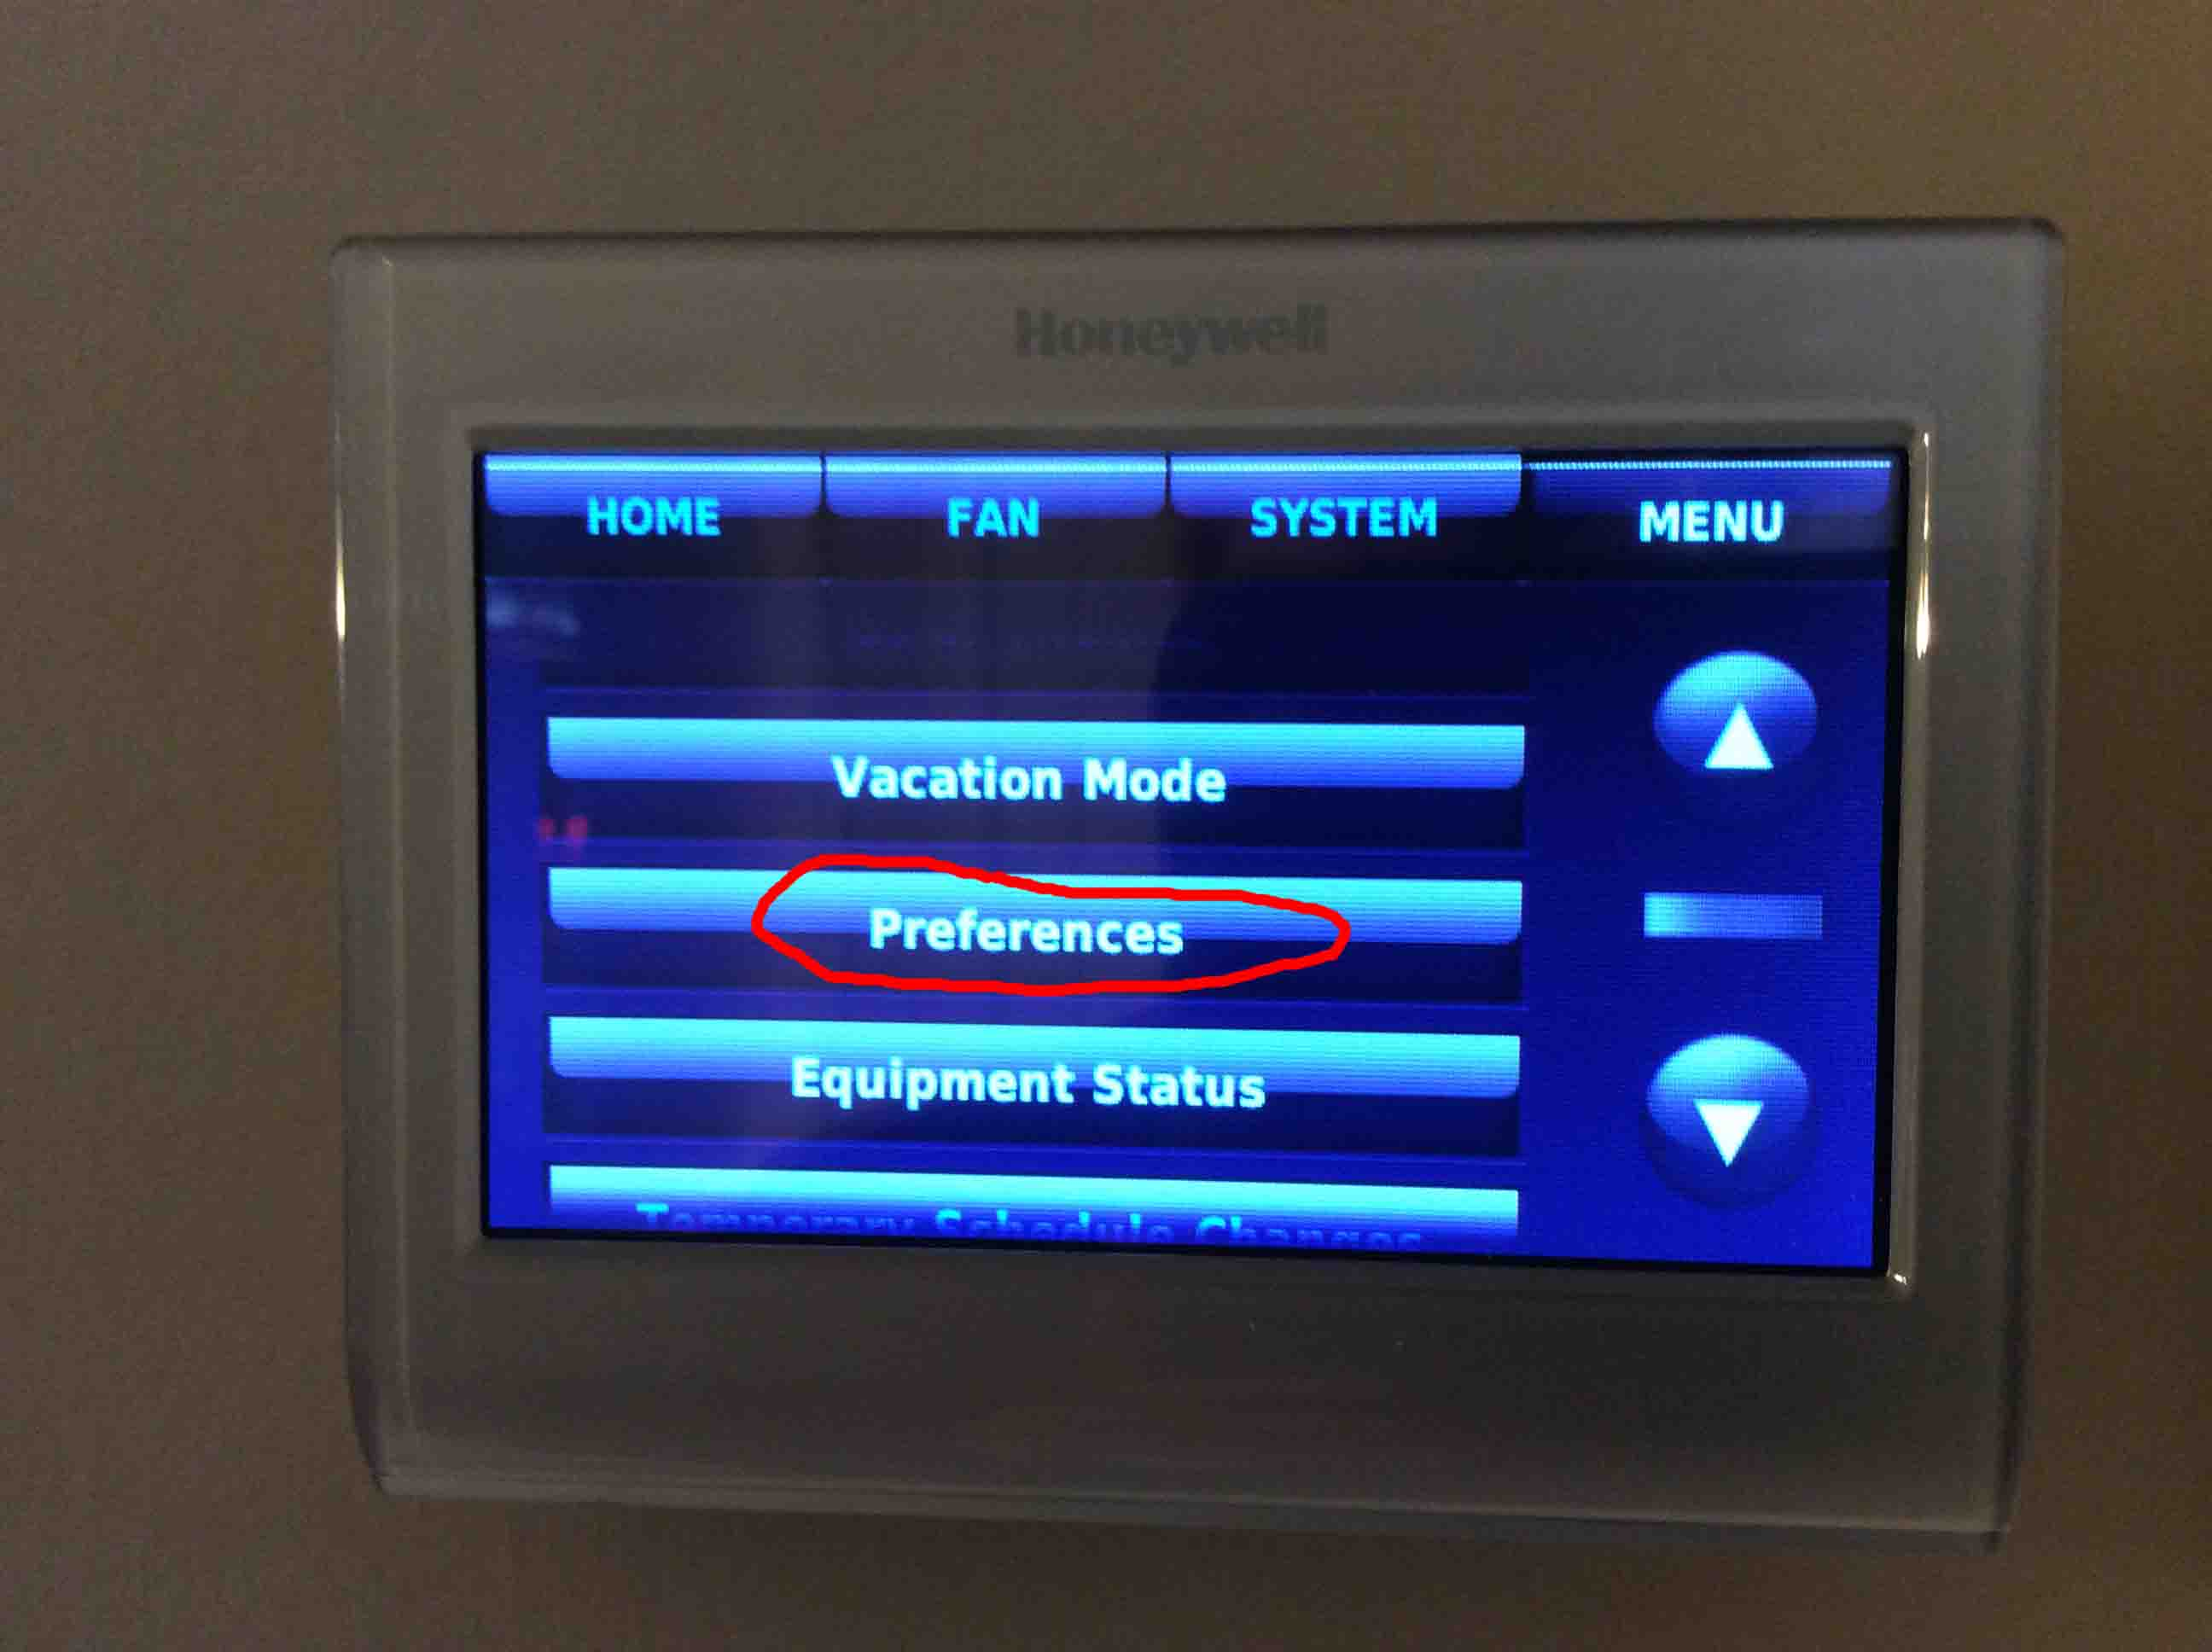 How To Reset Honeywell Thermostat Rth9580wf To Factory